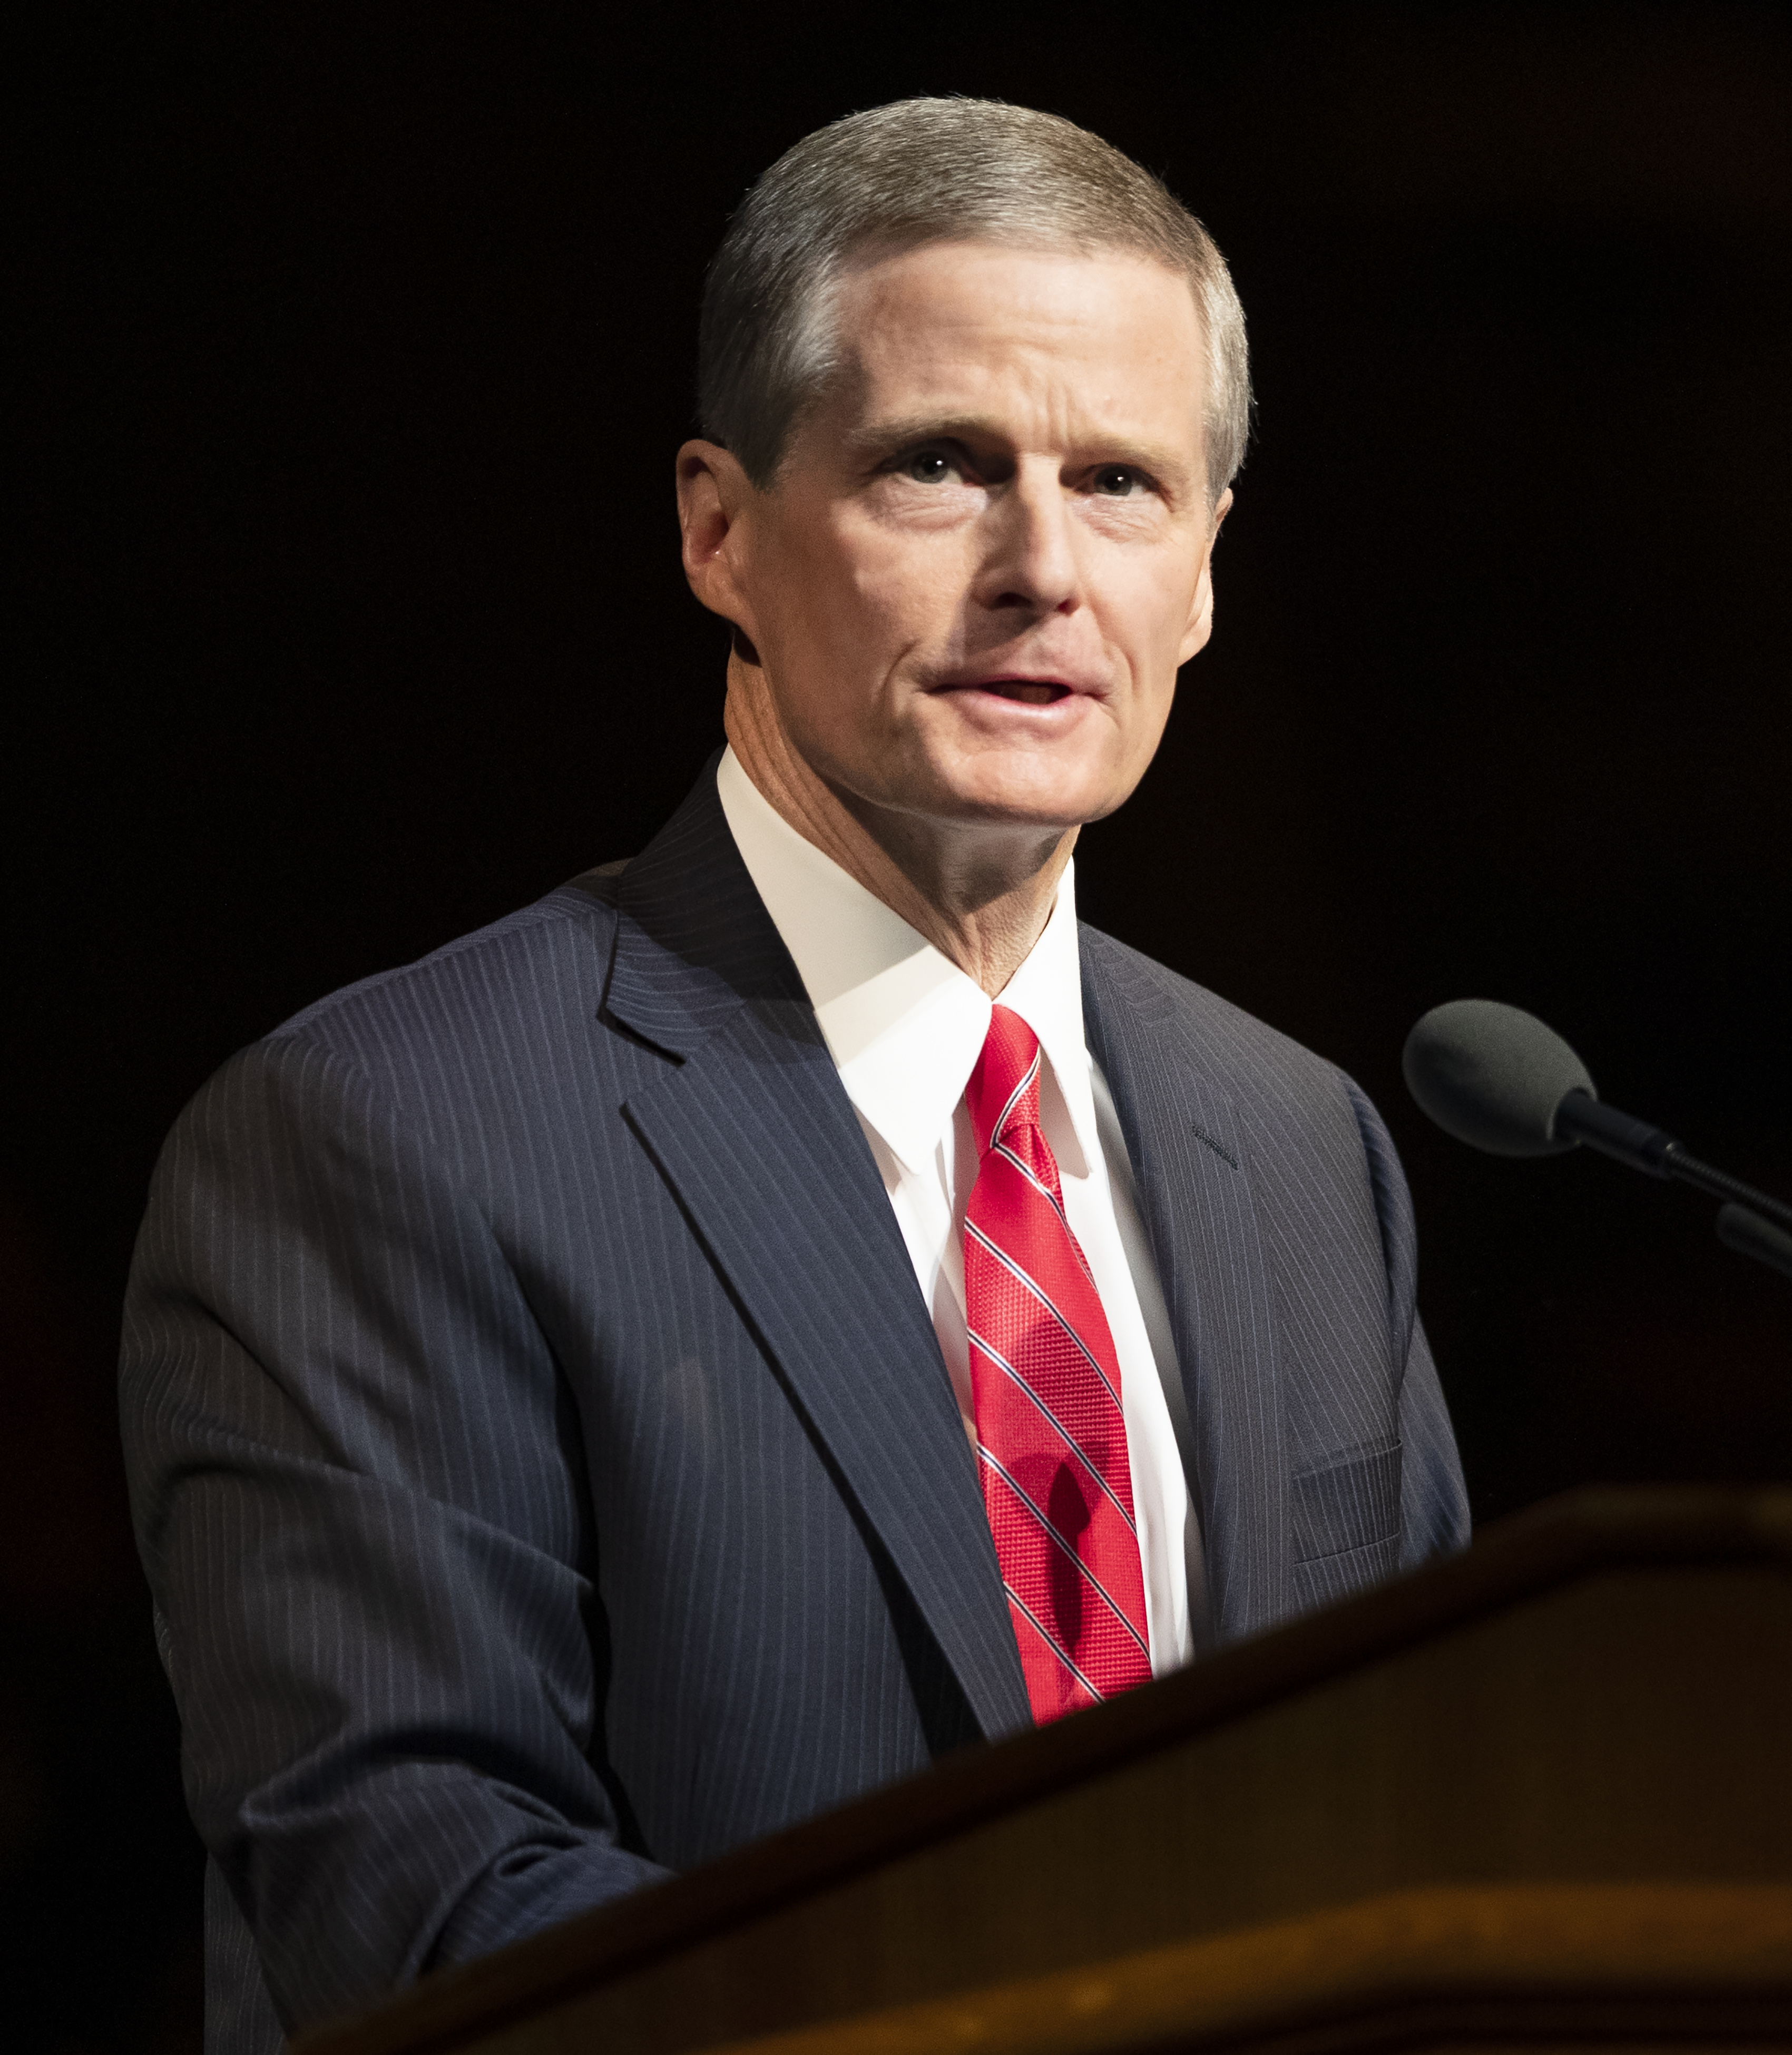 Elder David A. Bednar of the Quorum of the Twelve Apostlesat the campus devotional in the Marriott Center at BYU in Provo on Tuesday, Dec. 4, 2018. Elder Bednar was accompanied by his wife, Sister Susan Bednar.